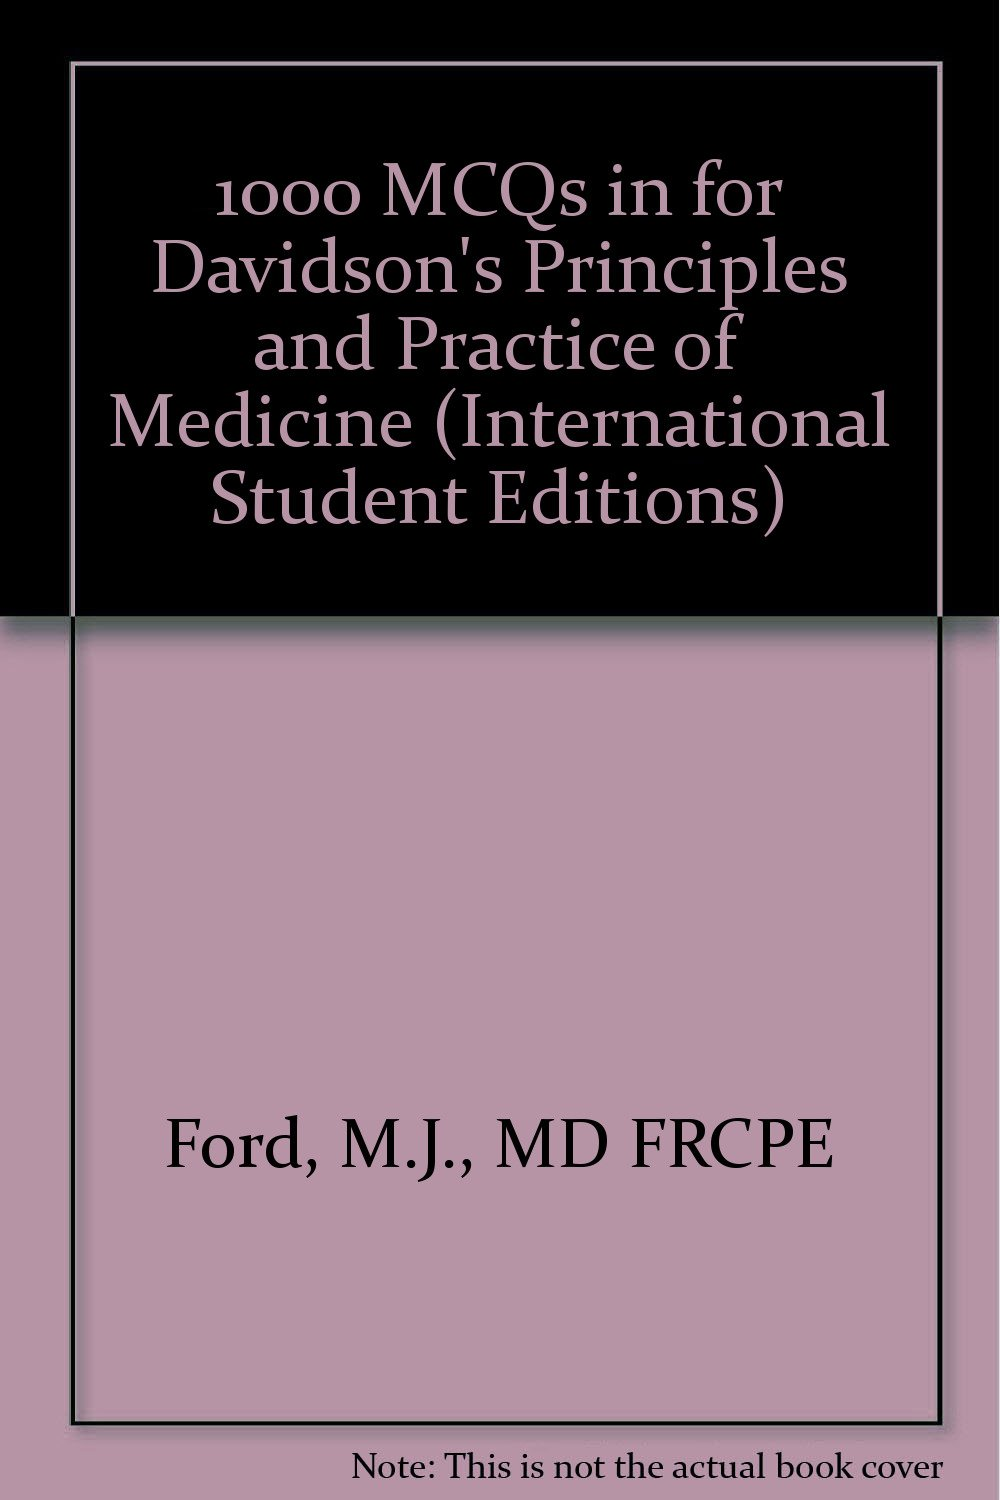 1000 MCQs in for Davidson's Principles and Practice of Medicine  (International Student Editions): Amazon.co.uk: M.J., MD FRCPE Ford, A.T.,  ...